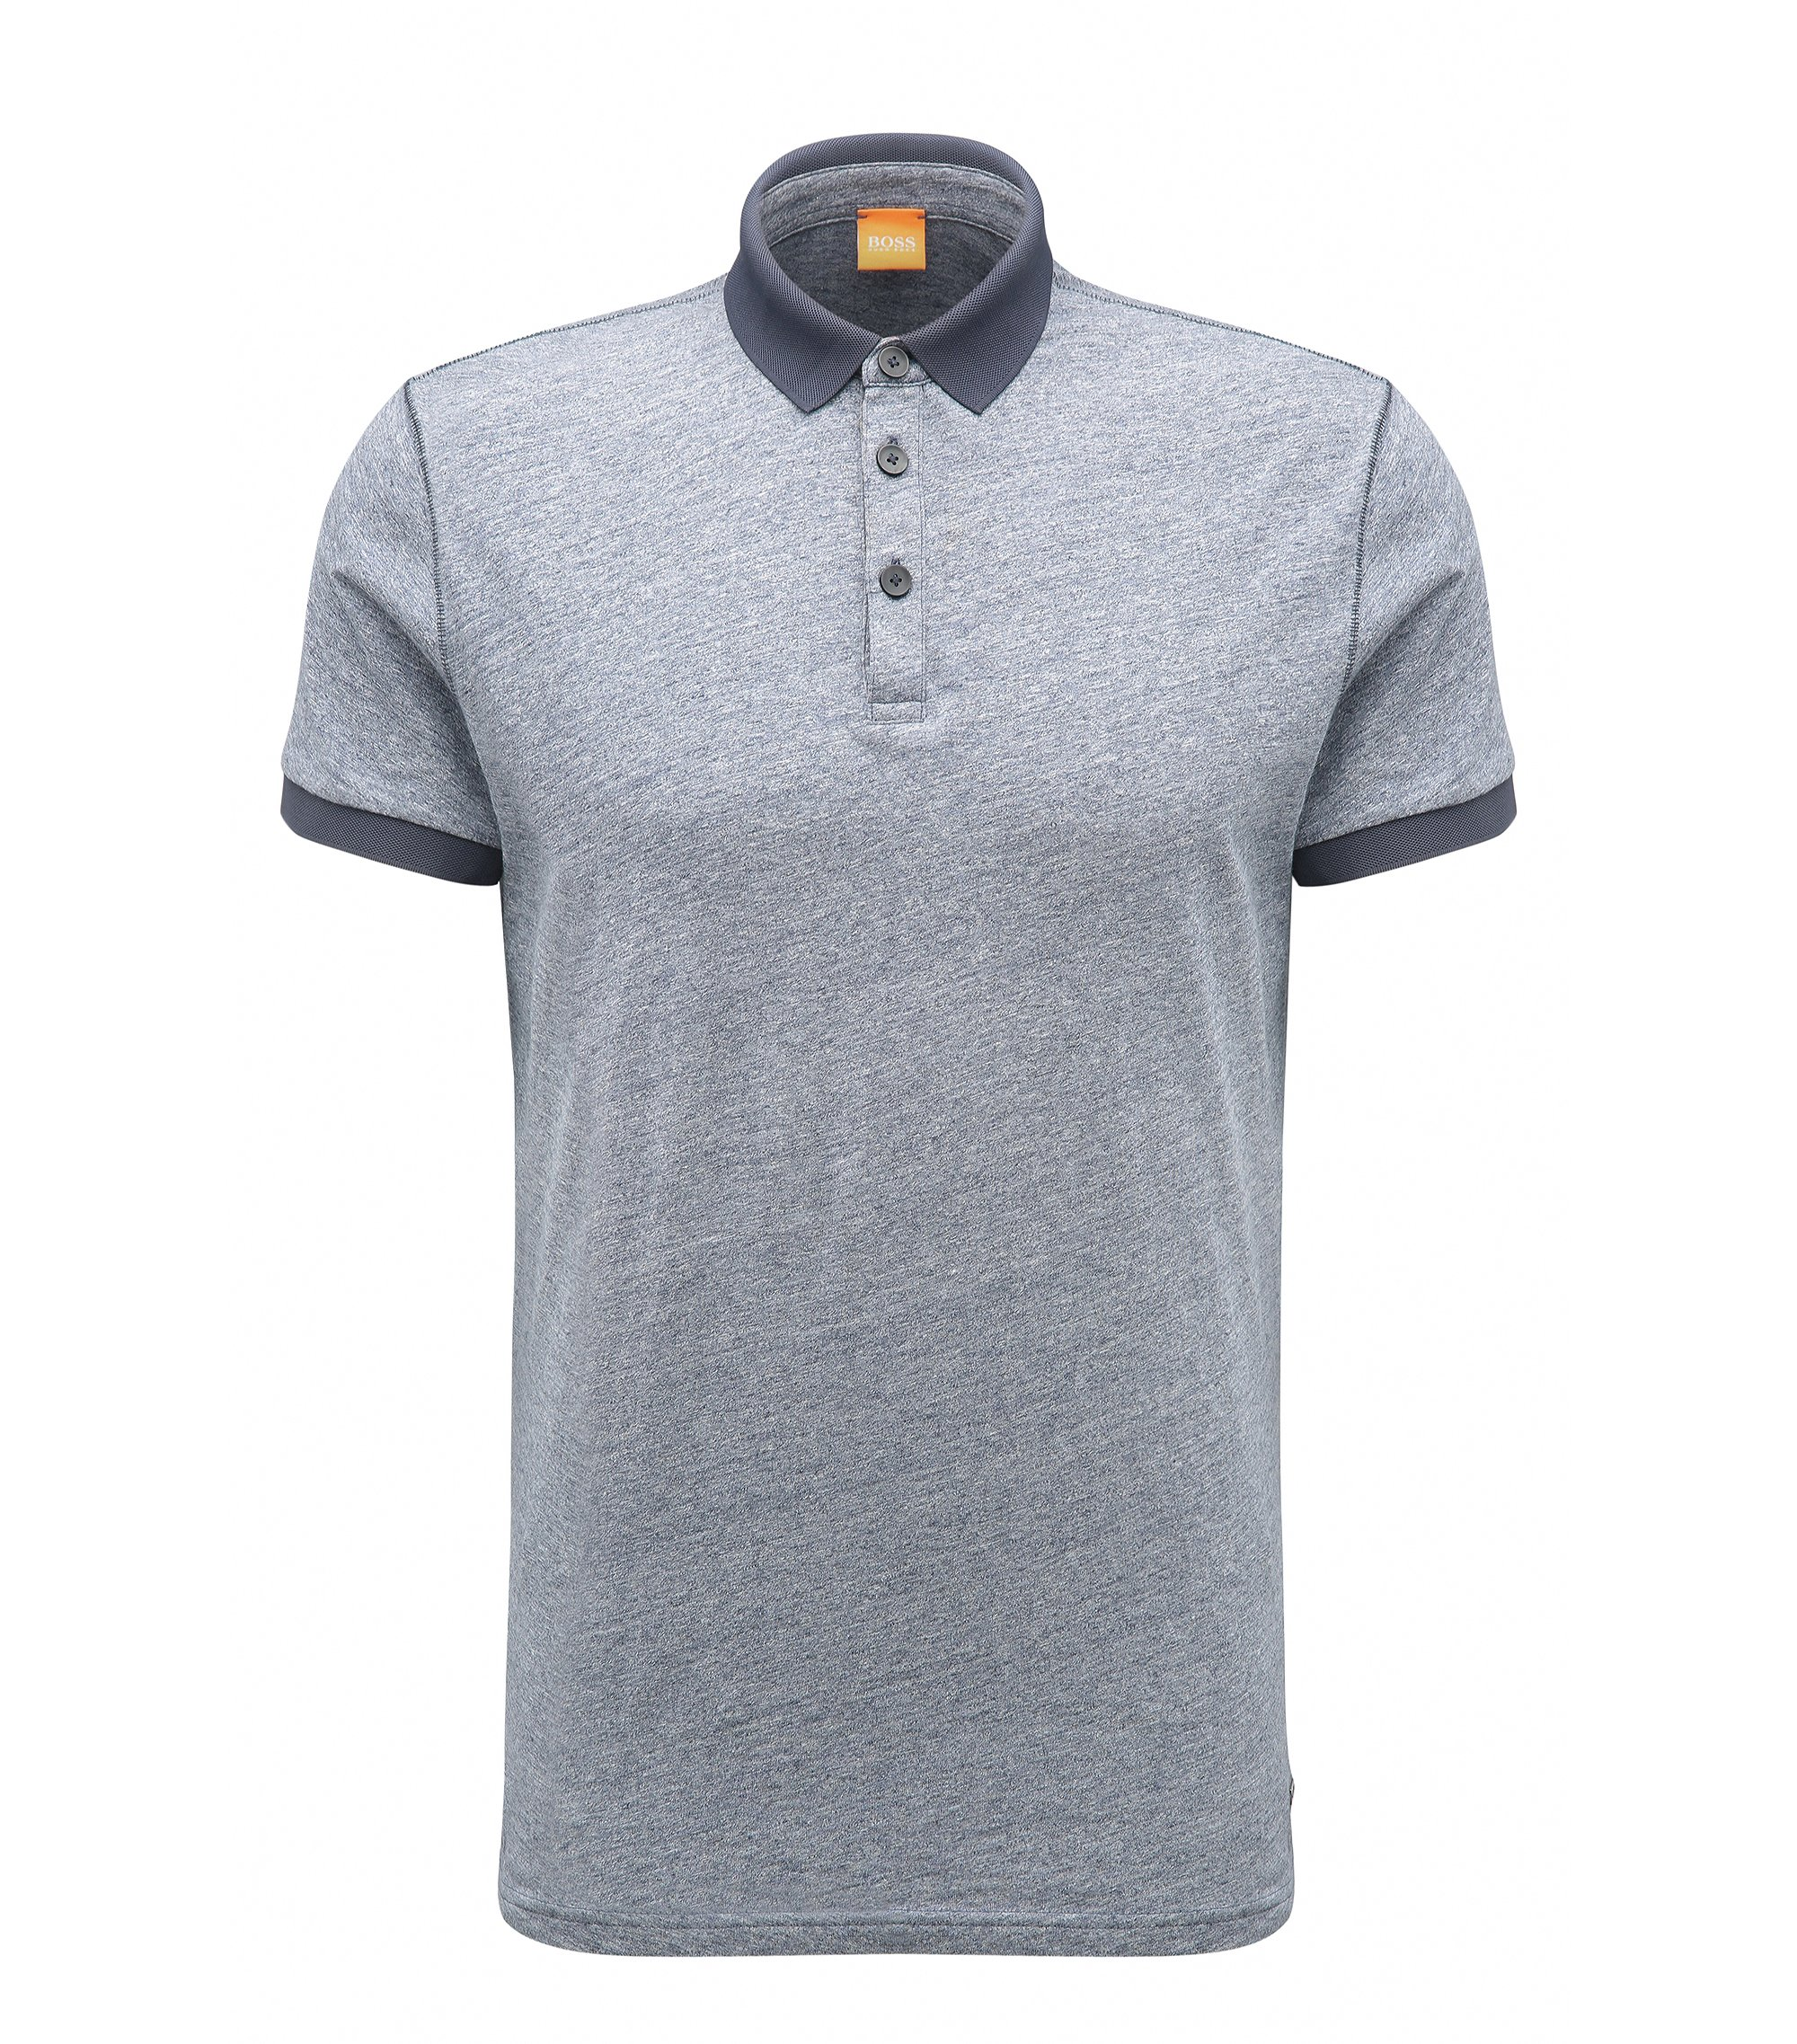 Melange Cotton Polo Shirt, Regular Fit | Performer, Dark Blue